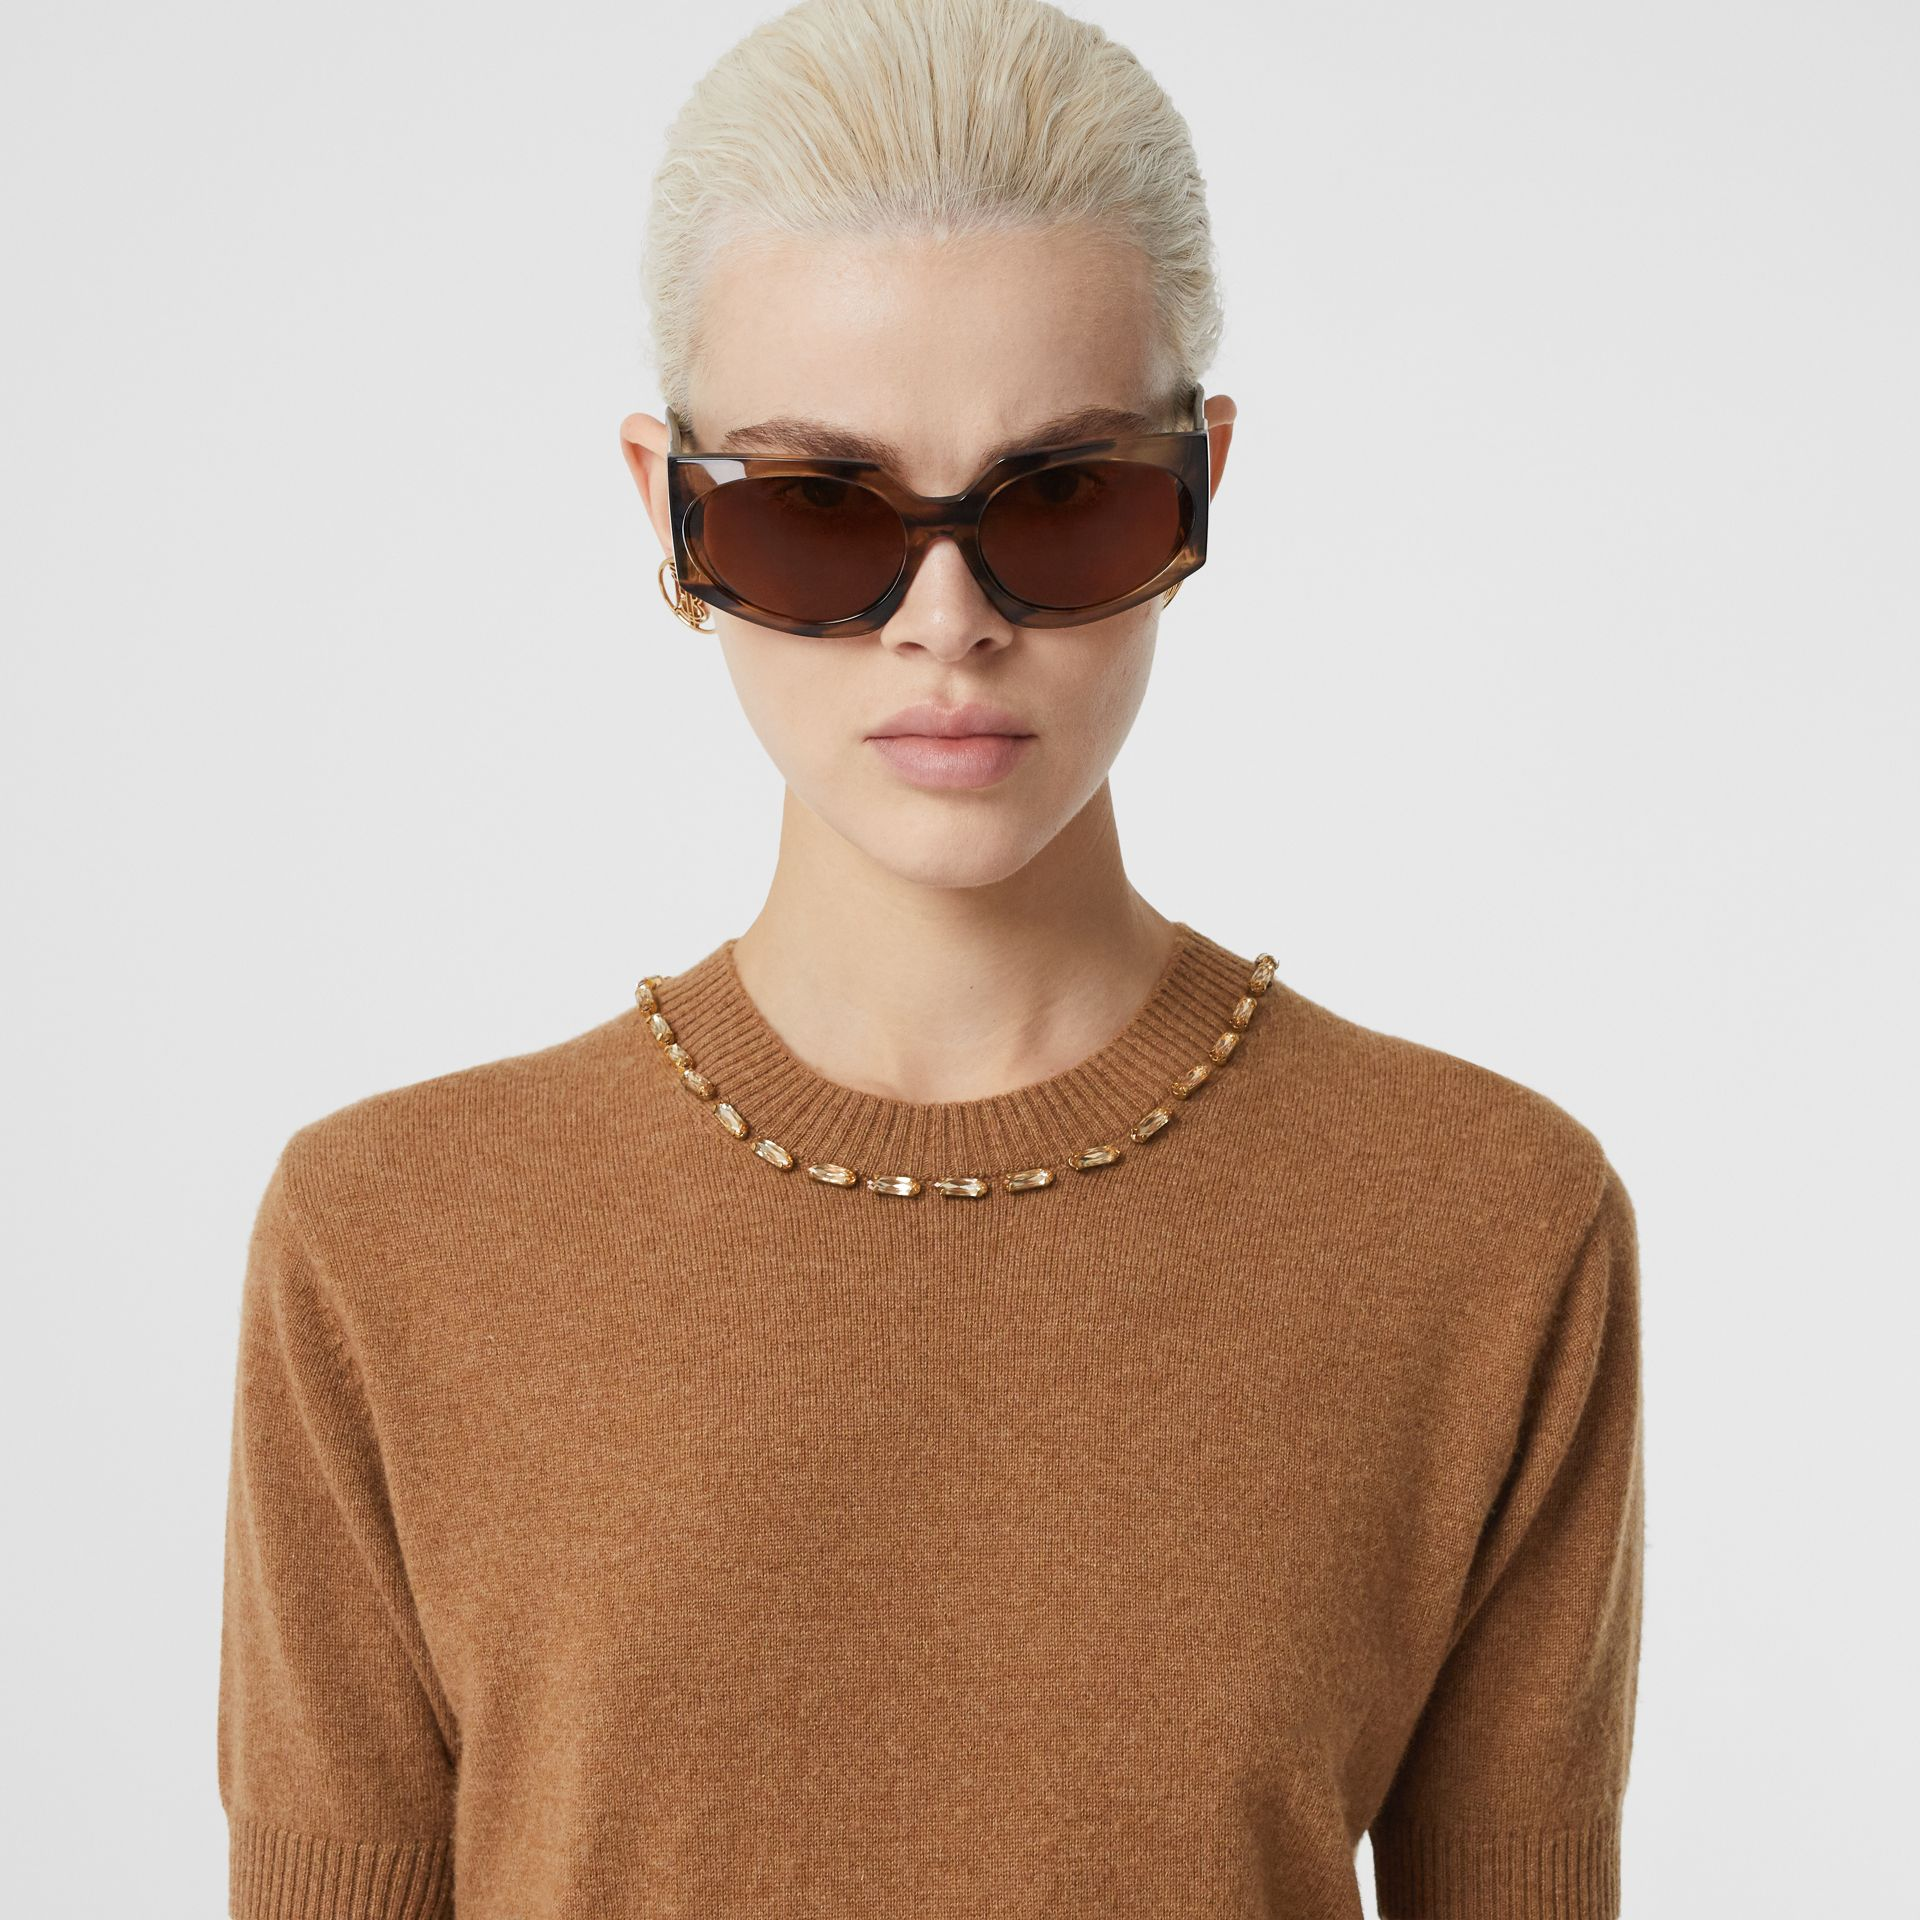 Embellished Cashmere Top in Burnt Almond - Women | Burberry - gallery image 1